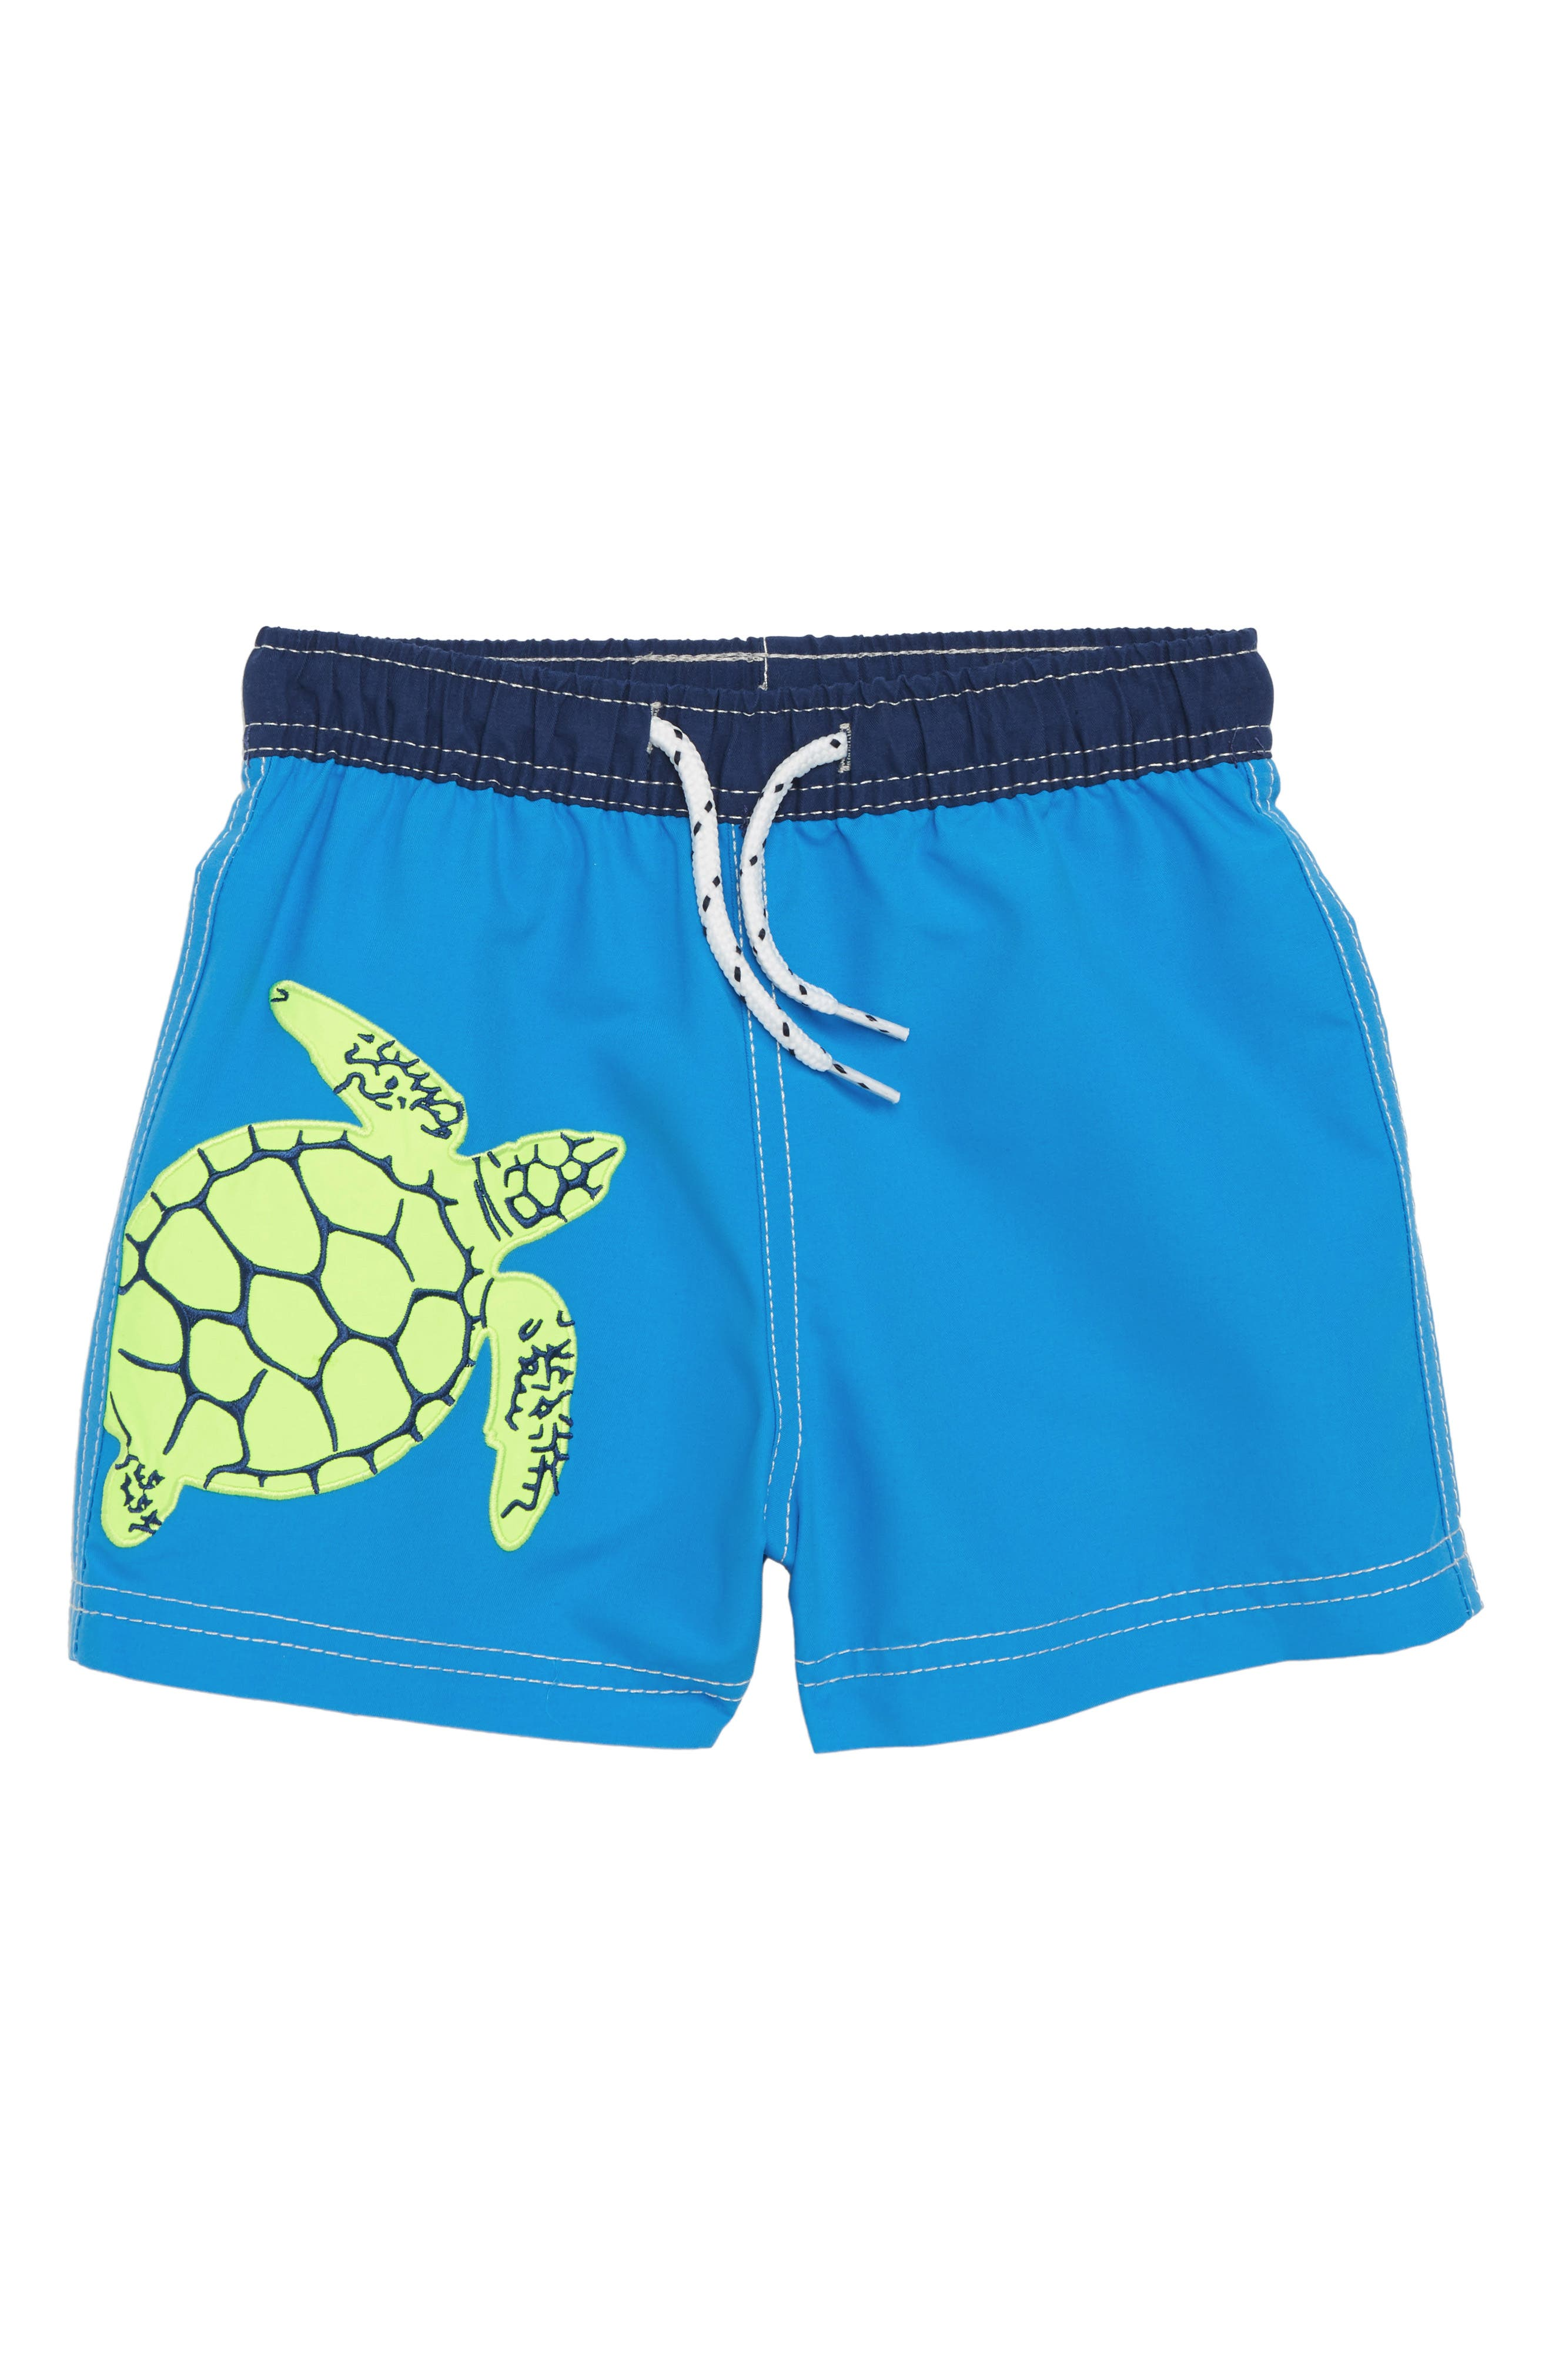 Embroidered Turtle Swim Trunks,                         Main,                         color,